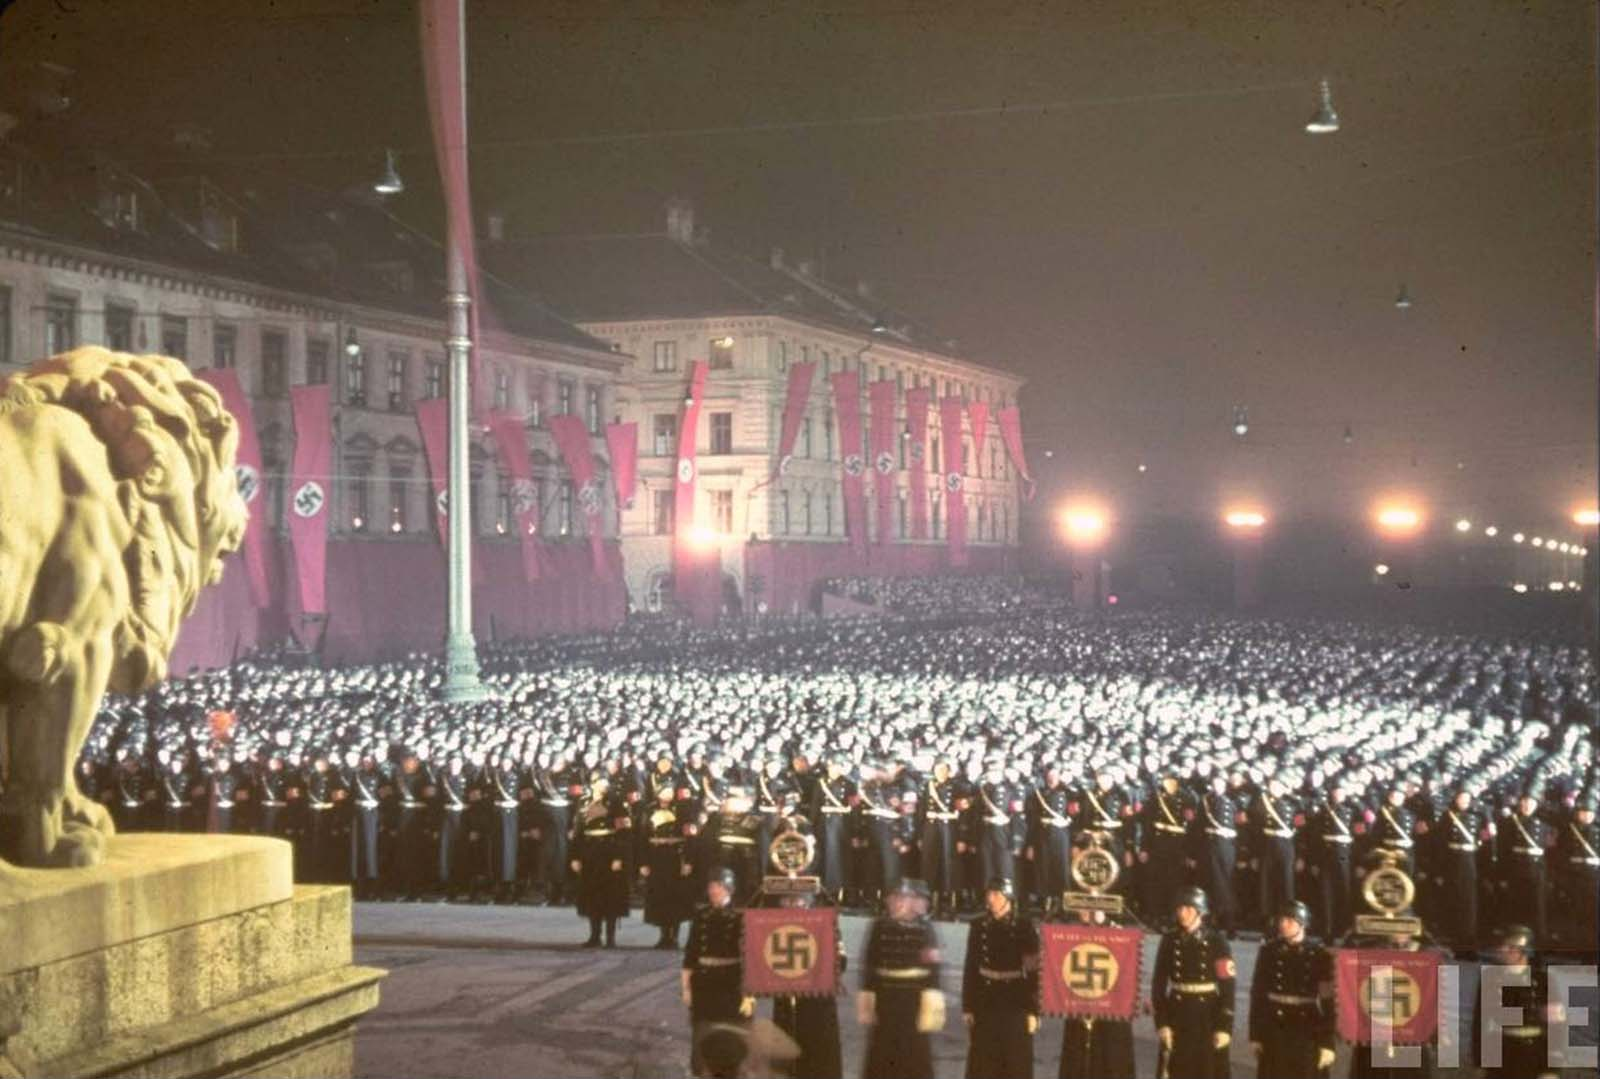 Loyalty oath of Nazi SS troops, Feldherrnhalle, Munich, 1938